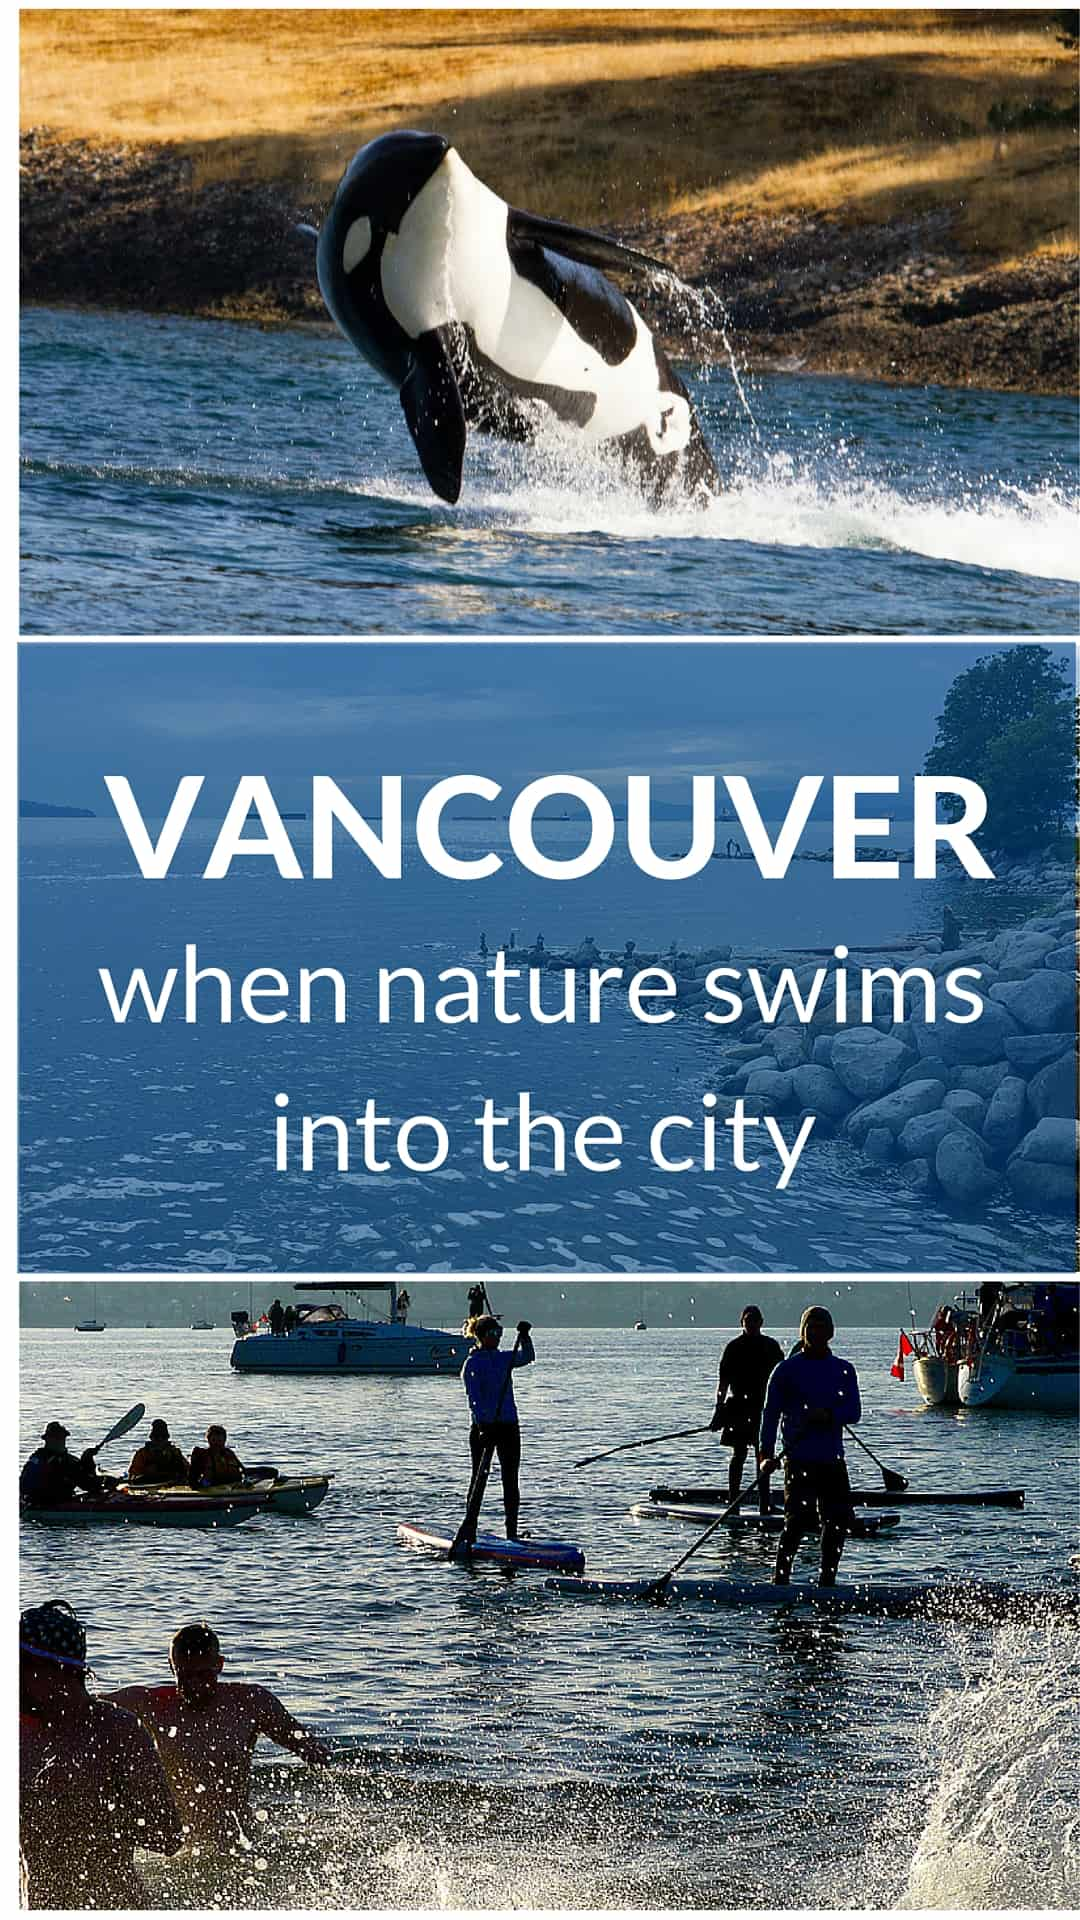 Vancouver - when nature swims into the city. Orca by Shawn McCready, https://www.flickr.com/photos/shawnmccready/